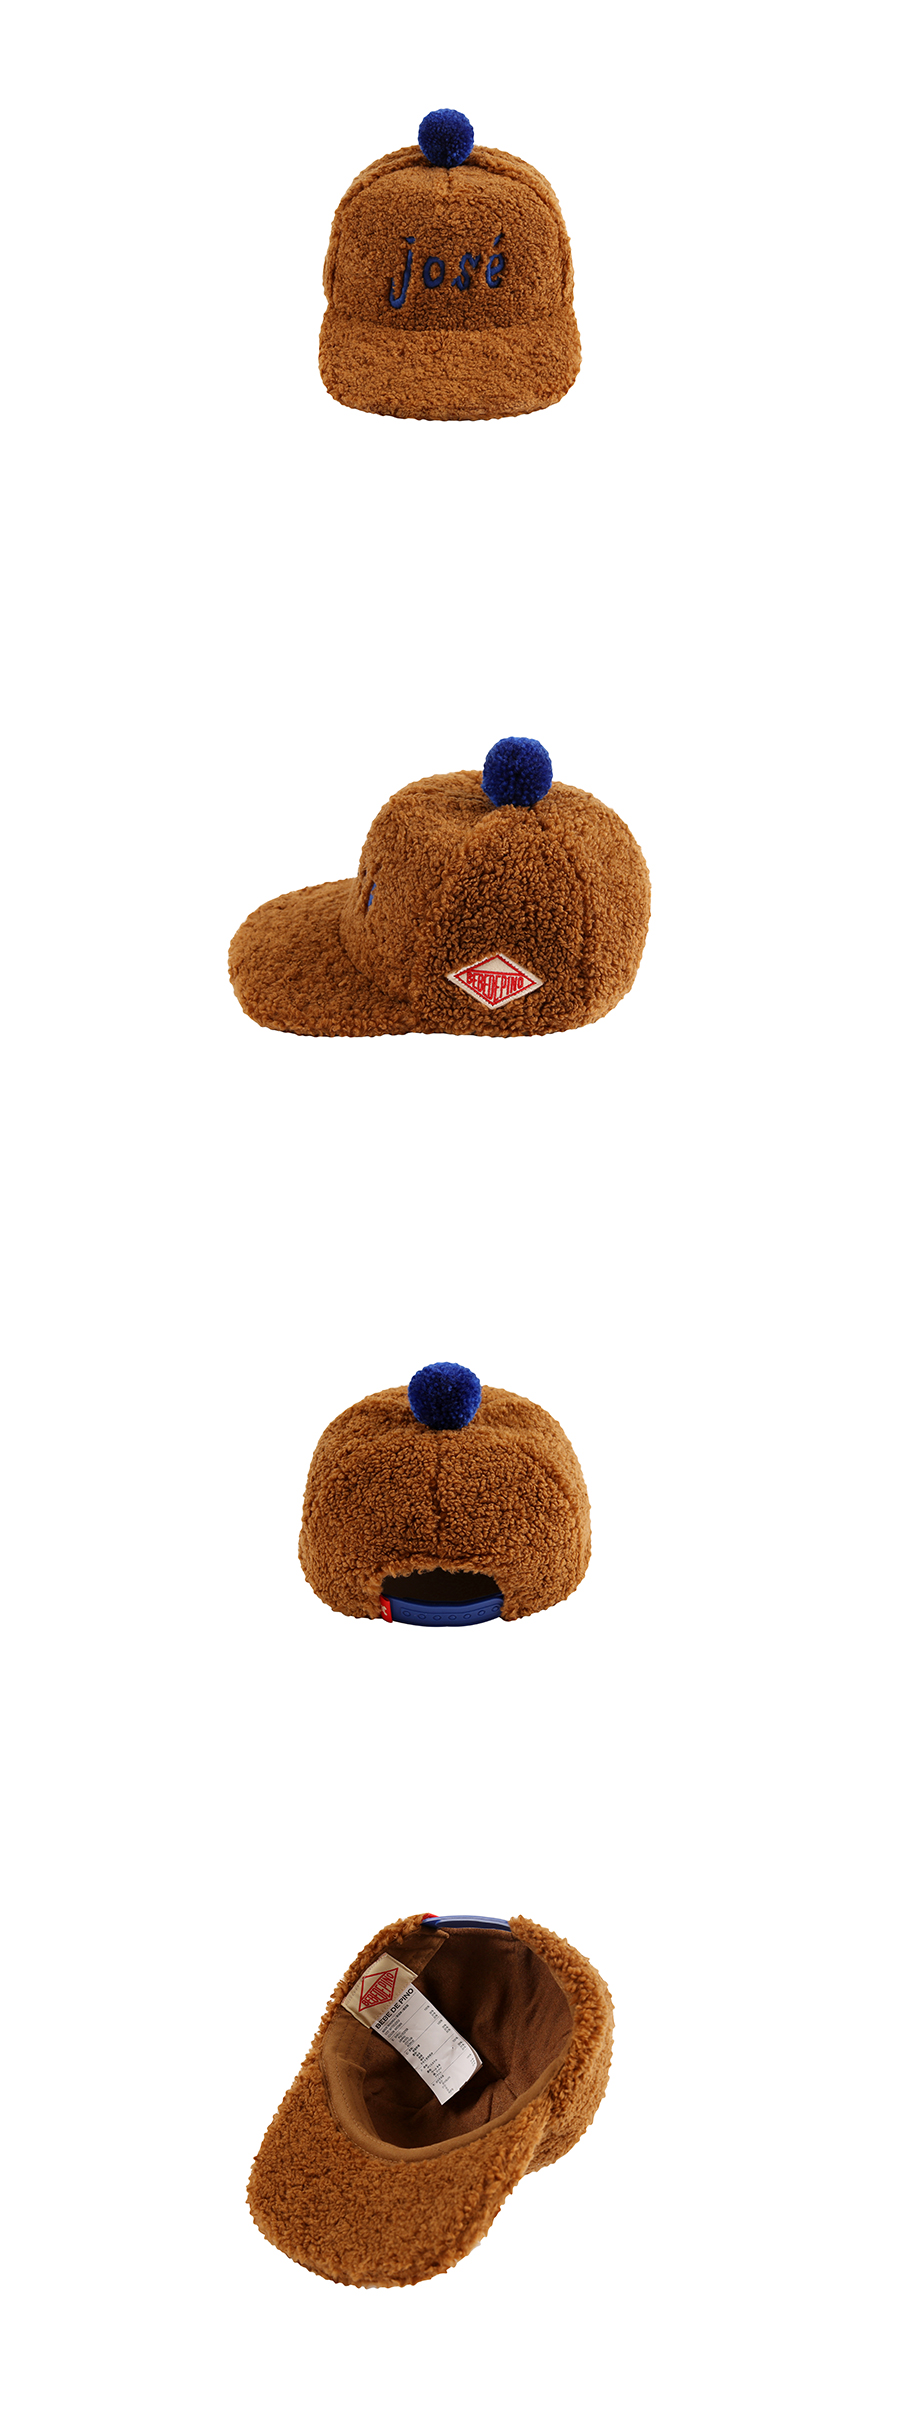 Jose fur 5 panel hat 상세 이미지